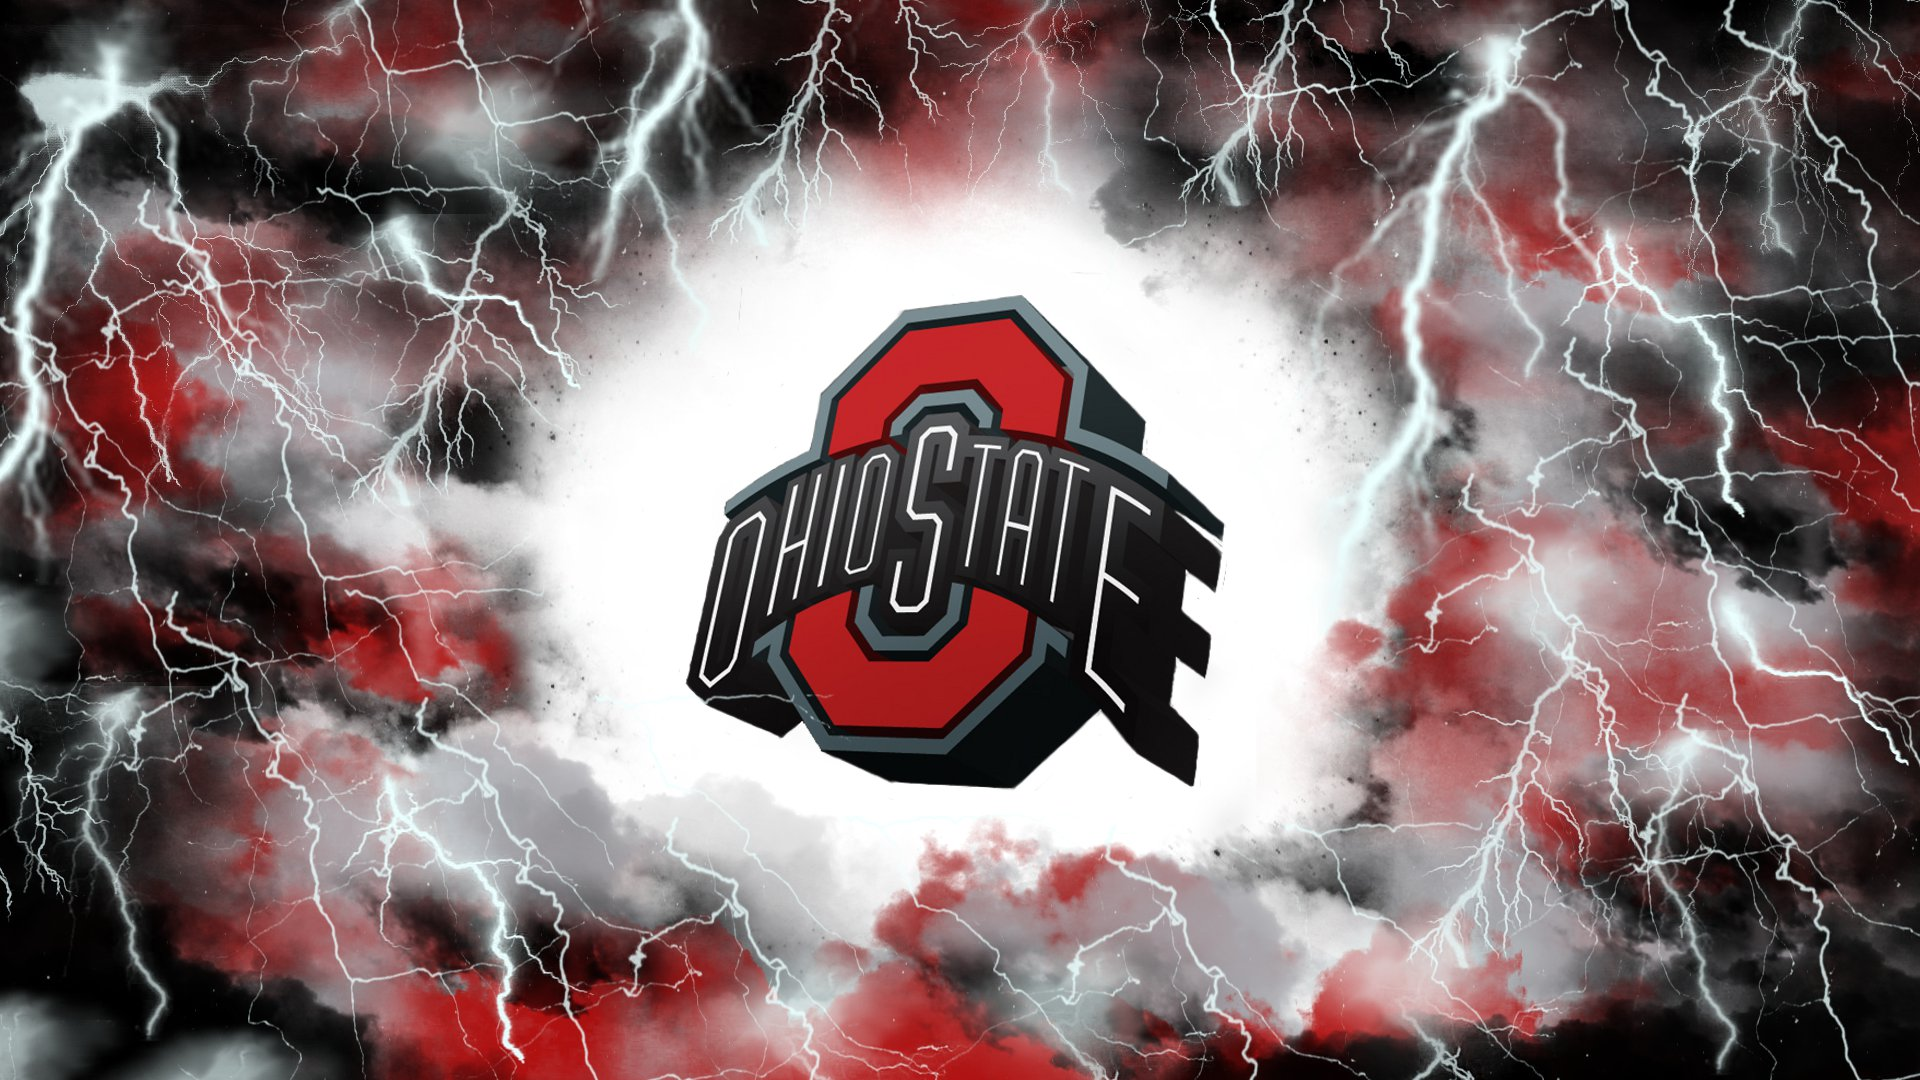 OHIO STATE BUCKEYES College Football 21 Wallpaper